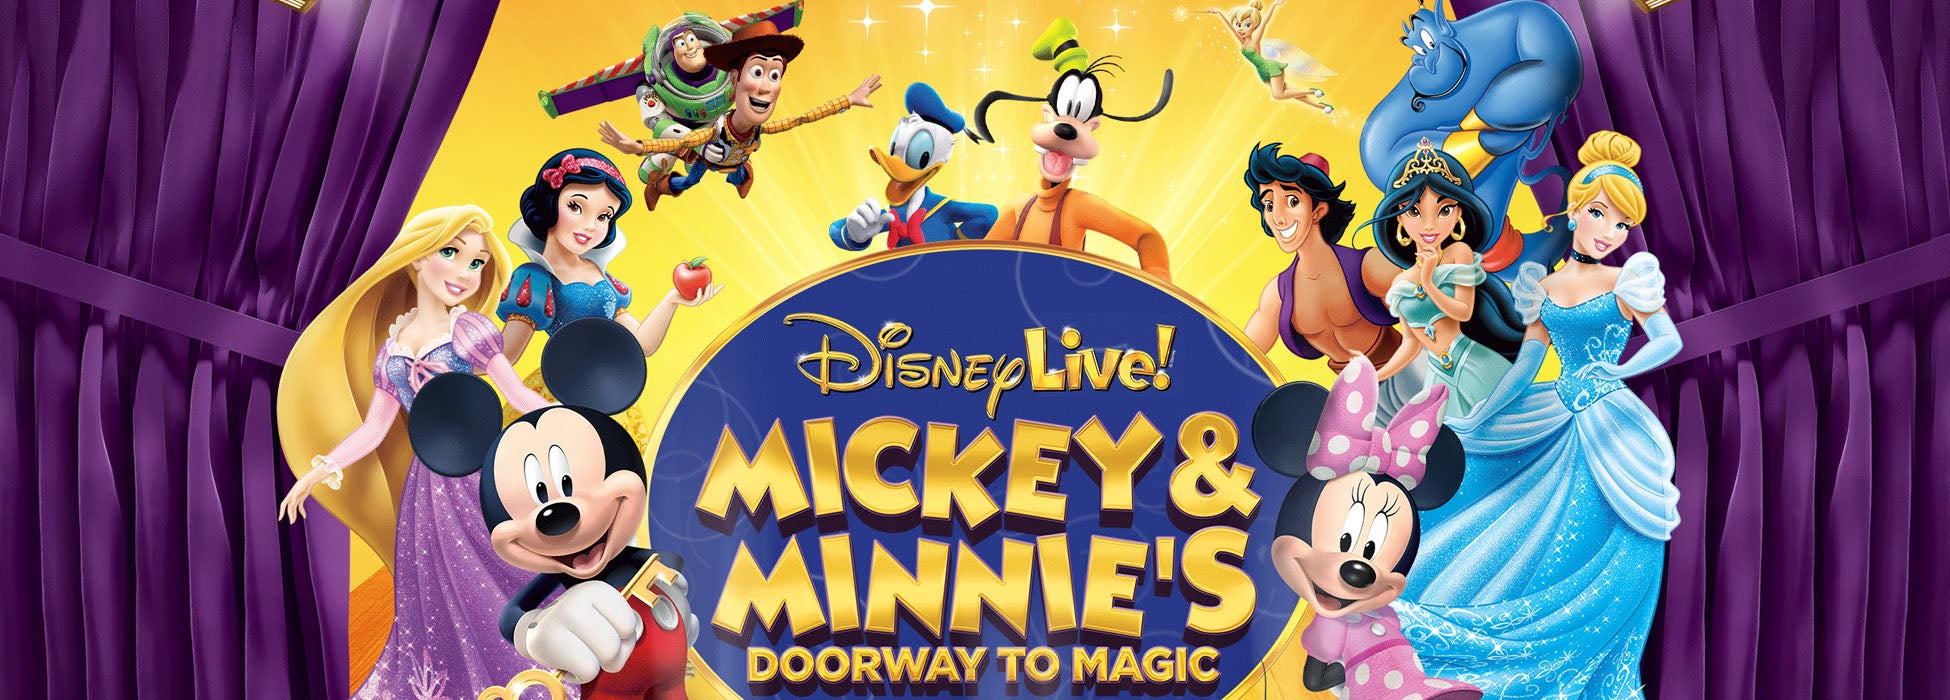 Disney Live_Norfolk_1950x700.jpg